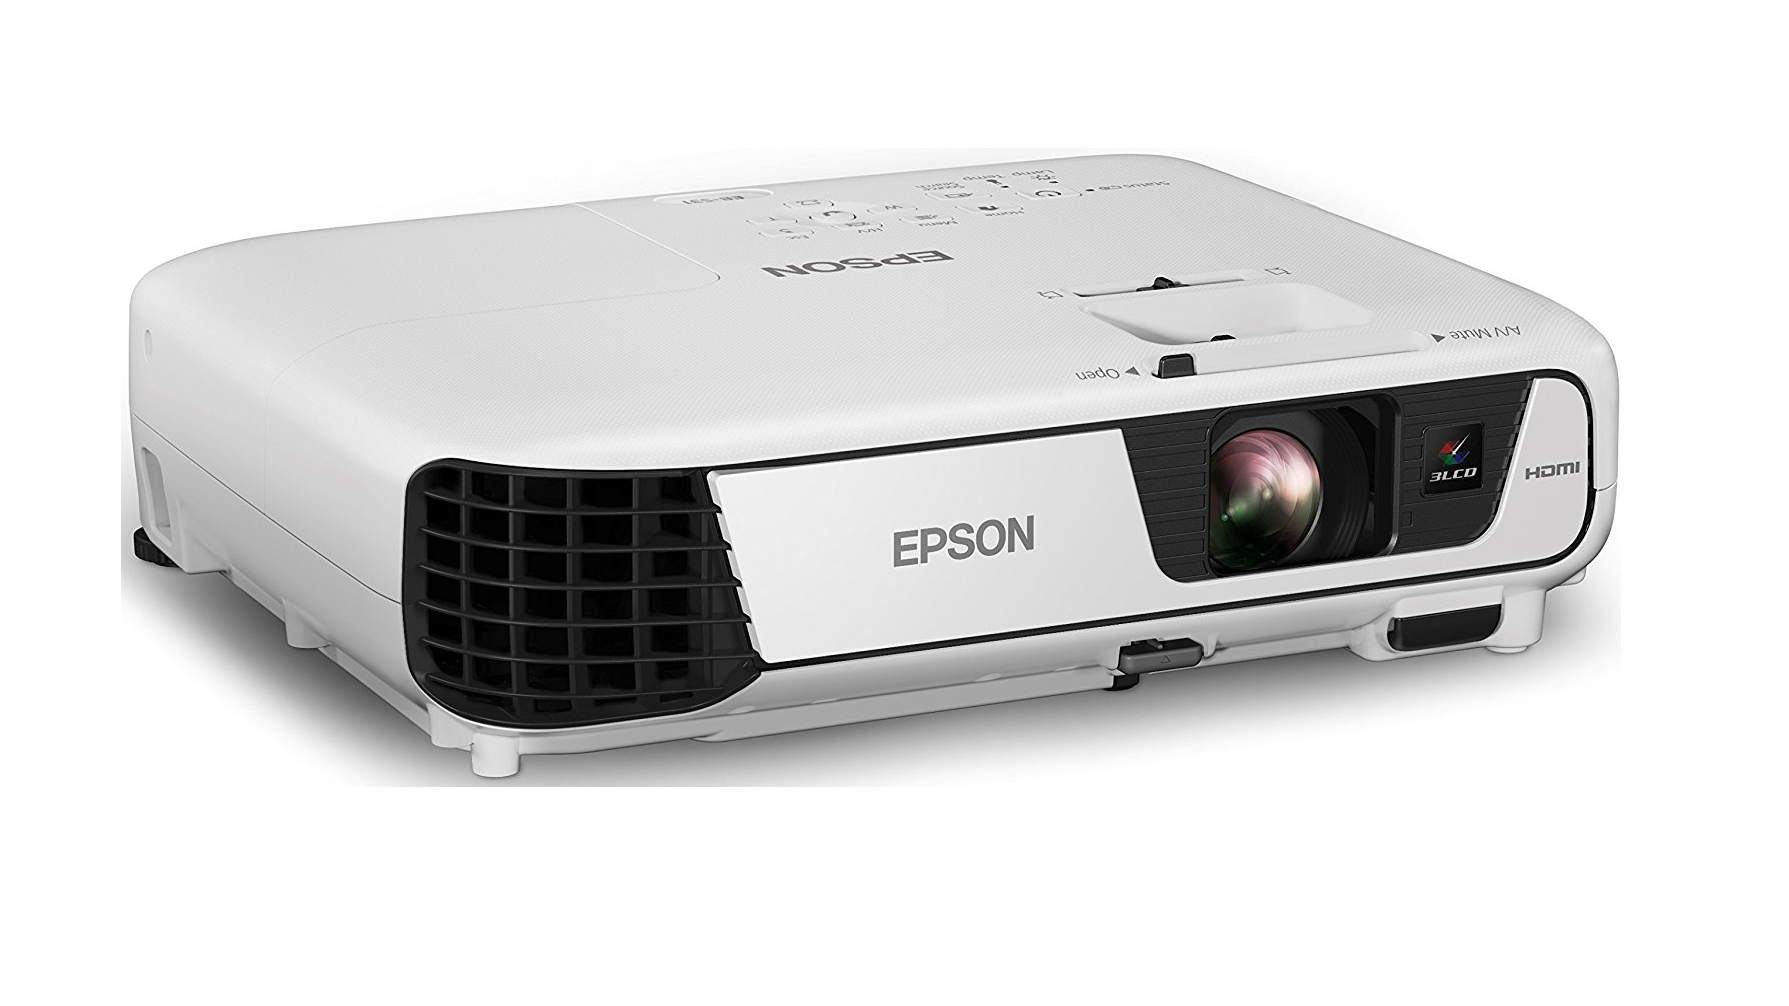 best business projectors 2018 eFGMHrssYx3LffuMSMdv